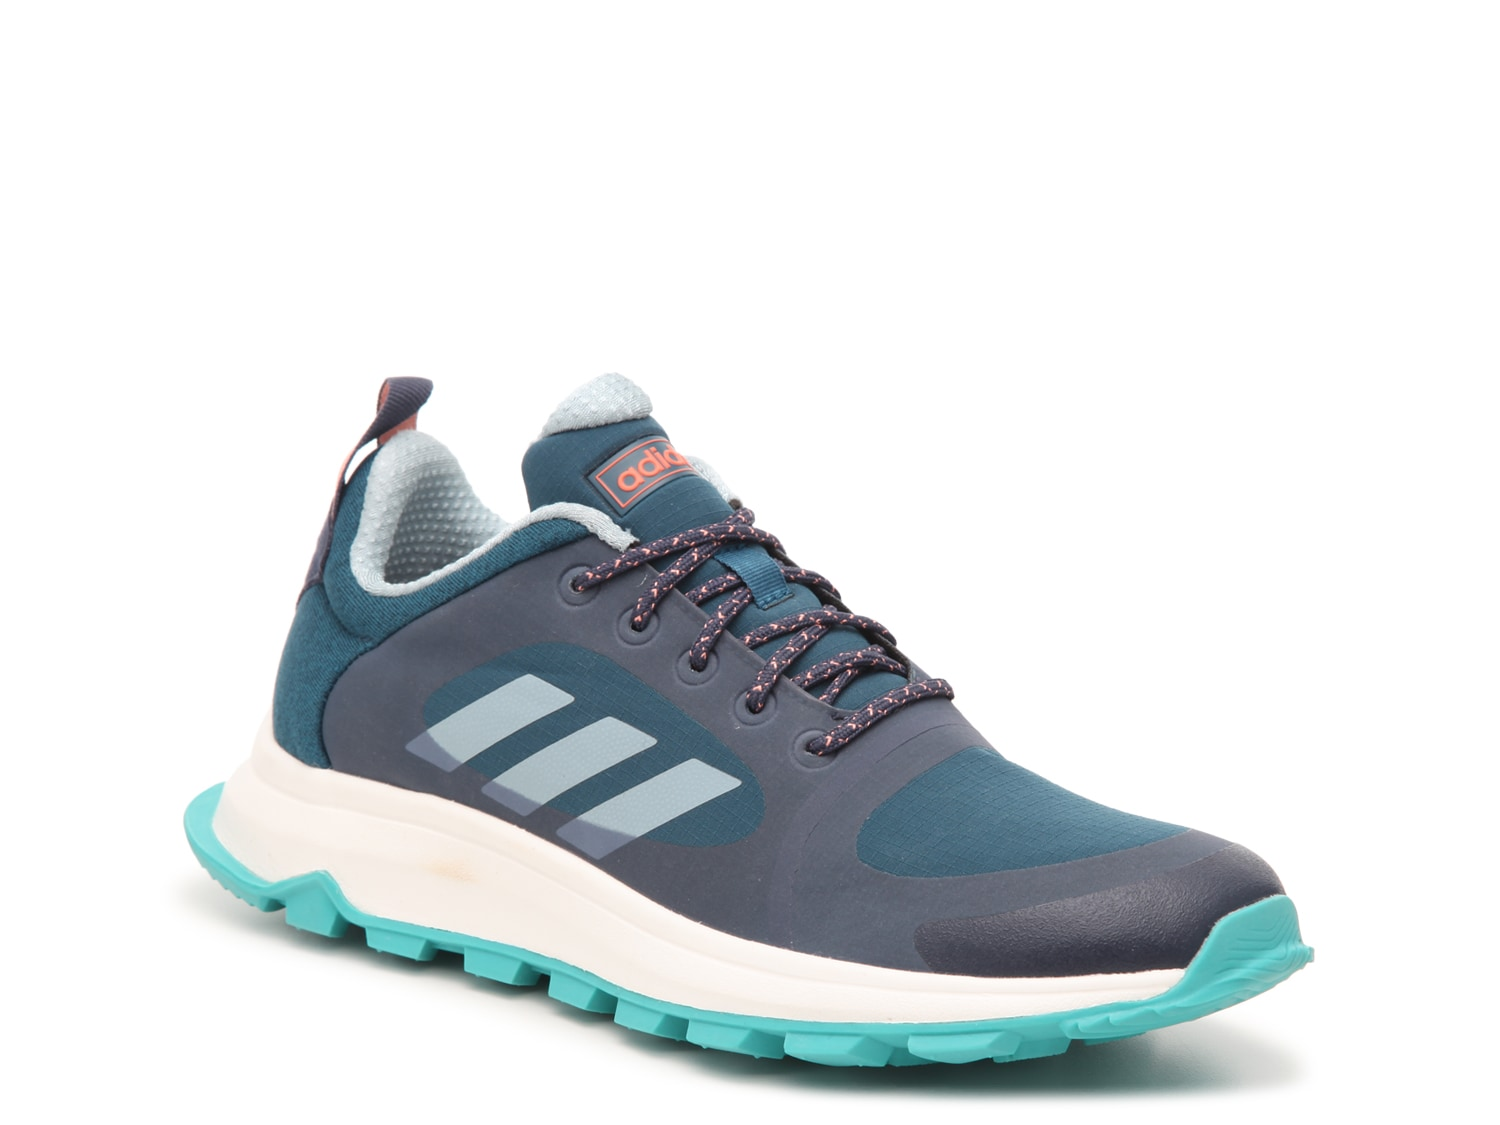 Tres frecuentemente Perspectiva  adidas Response Trail X Running Shoe - Women's Women's Shoes | DSW